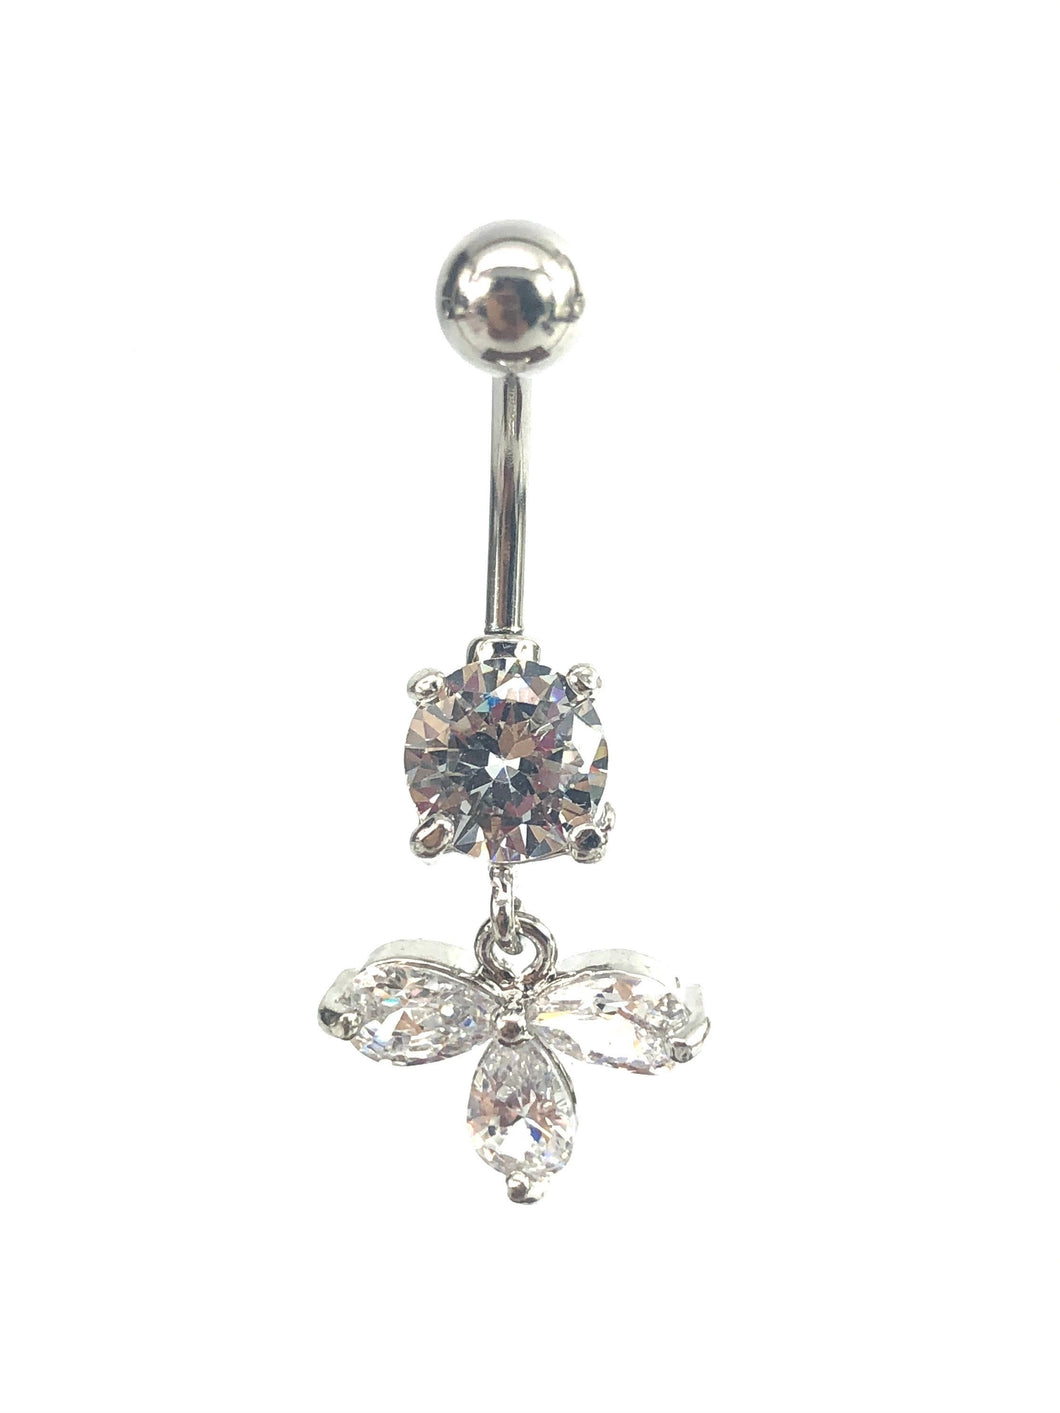 Stainless steel curve bar , w/ gem belly ring, SKU# 10-3-1